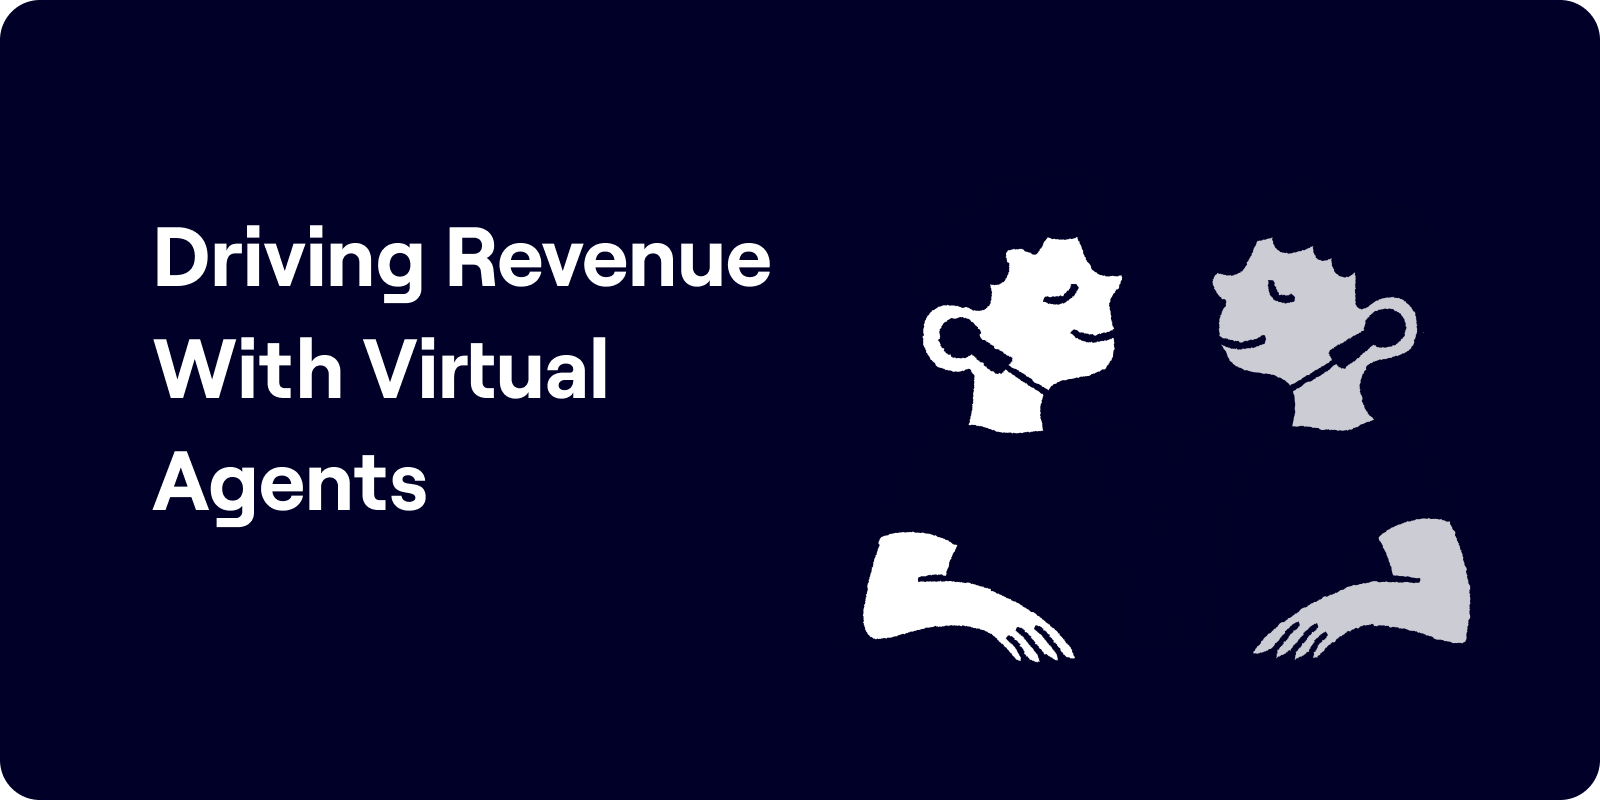 Driving Revenue with Virtual Agents Illustration